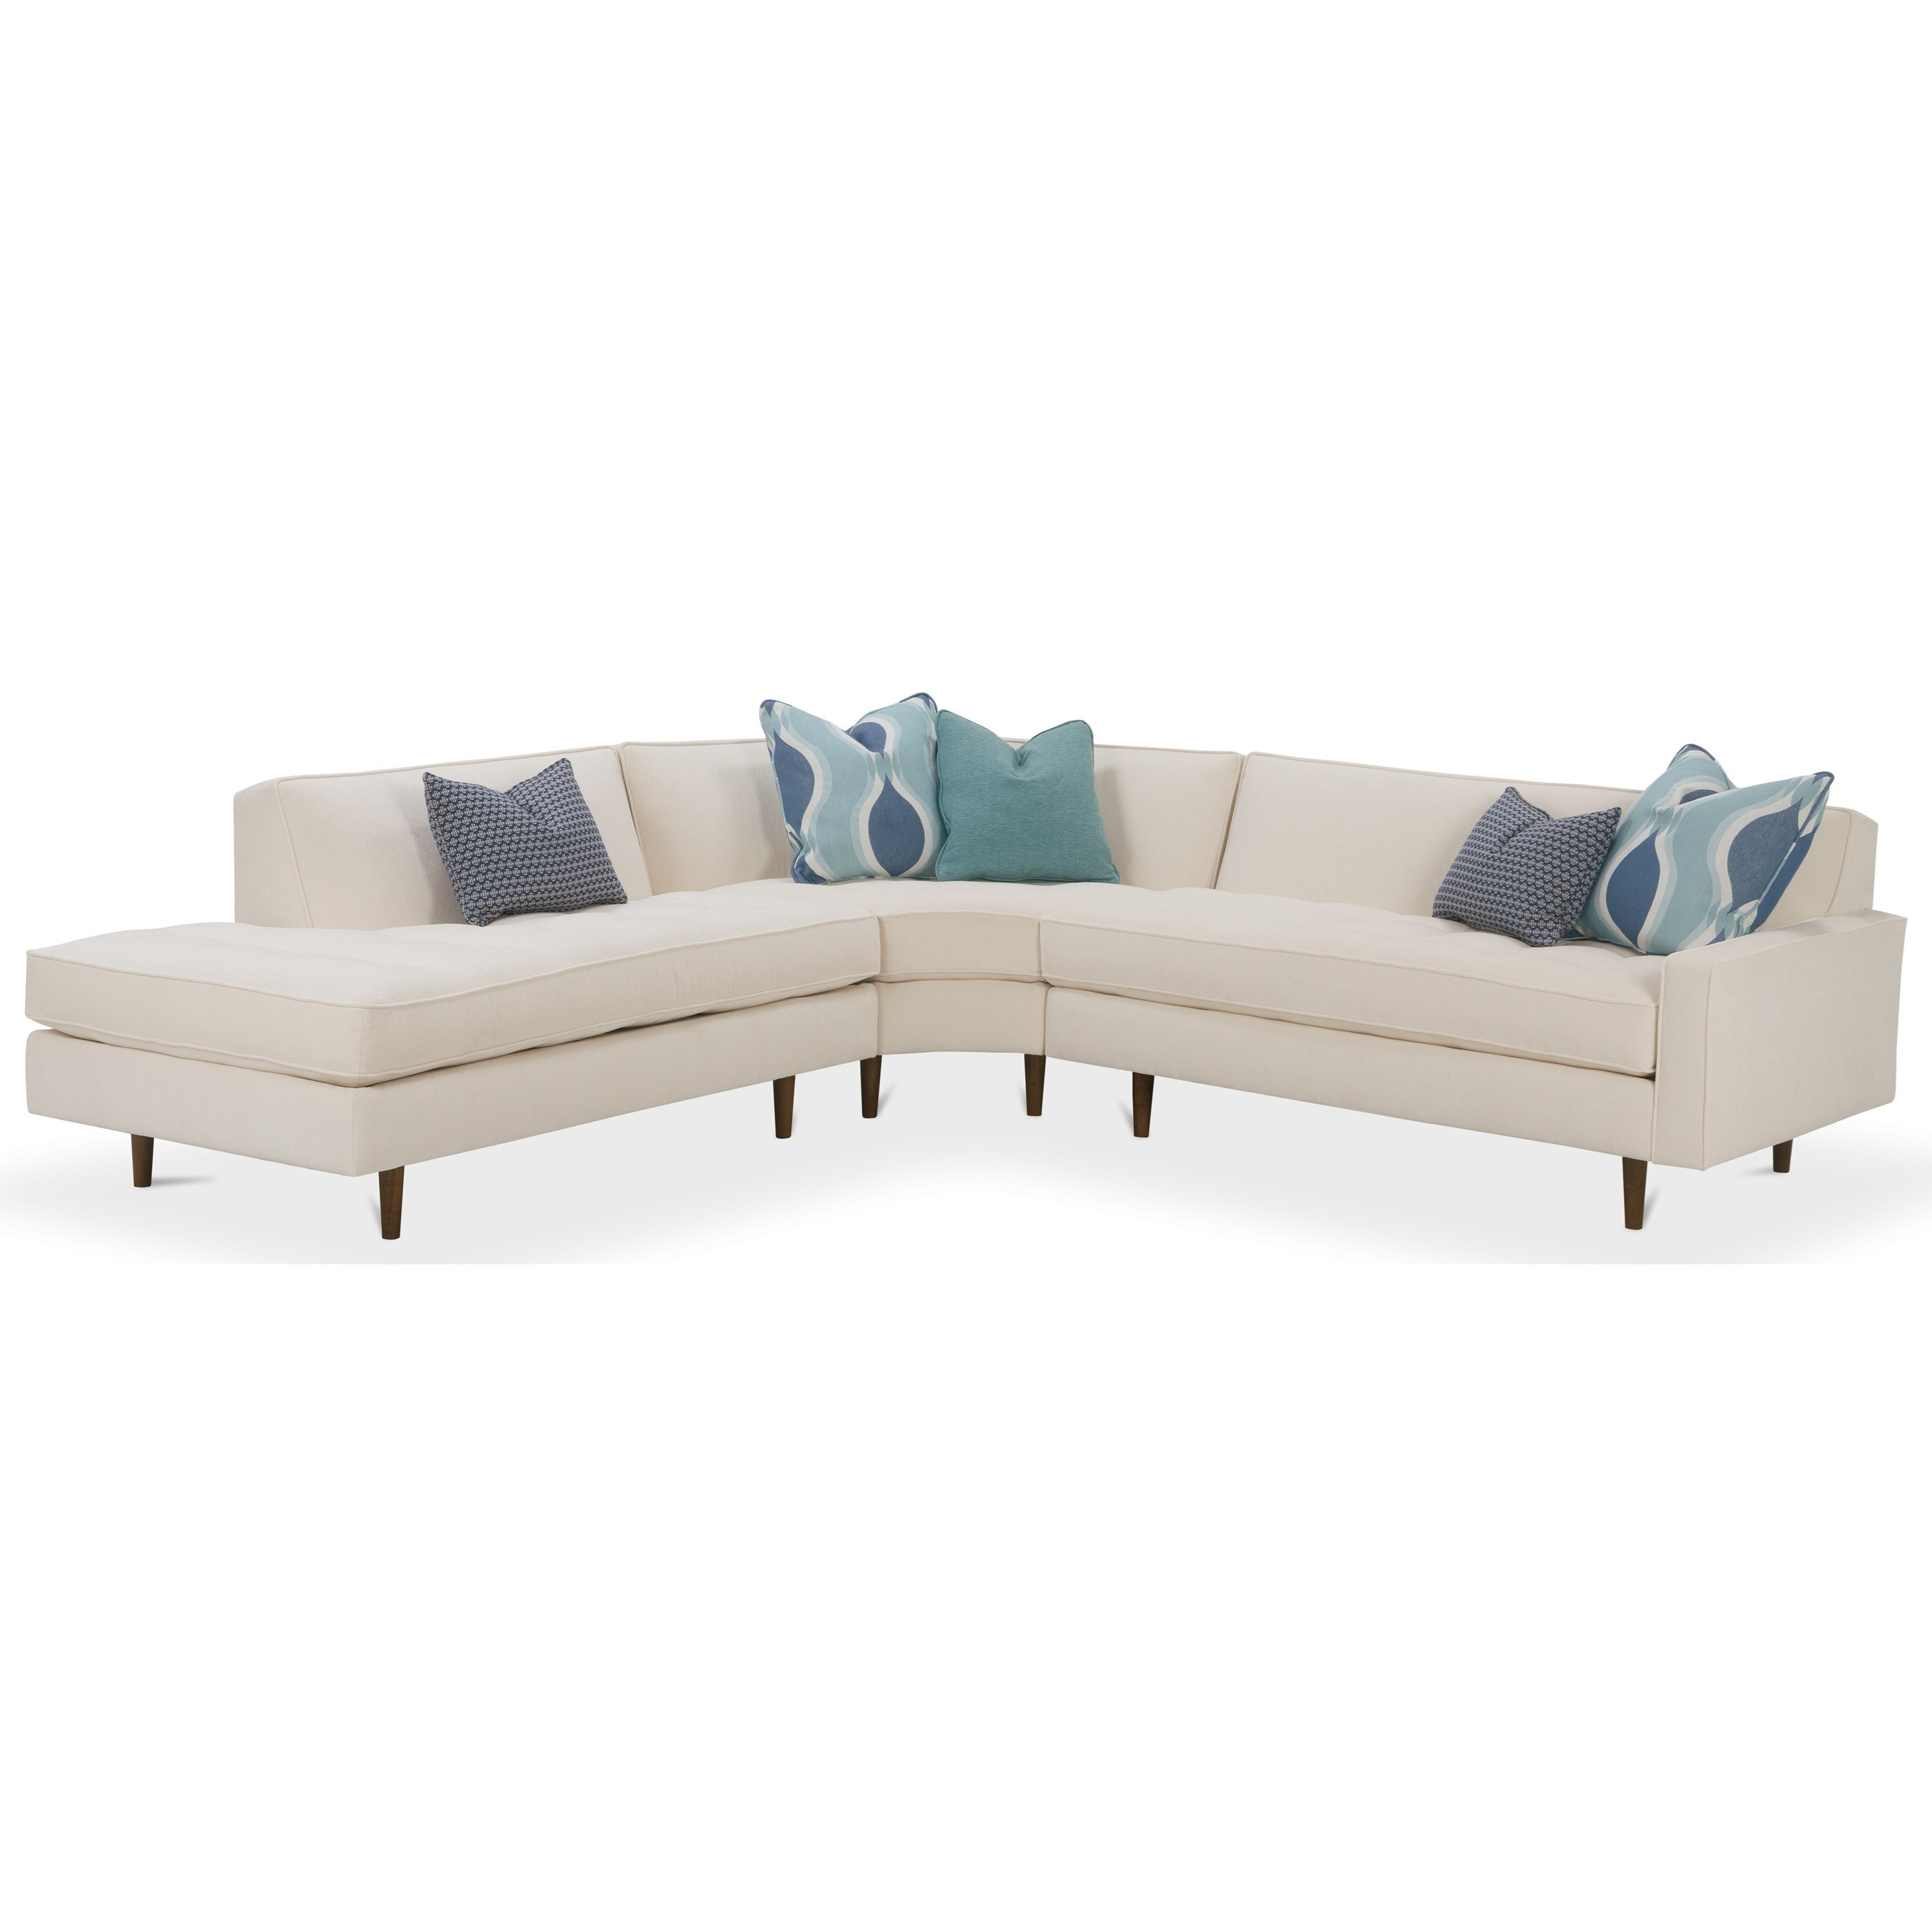 rowe masquerade sectional sofa trays sofas brady by furniture